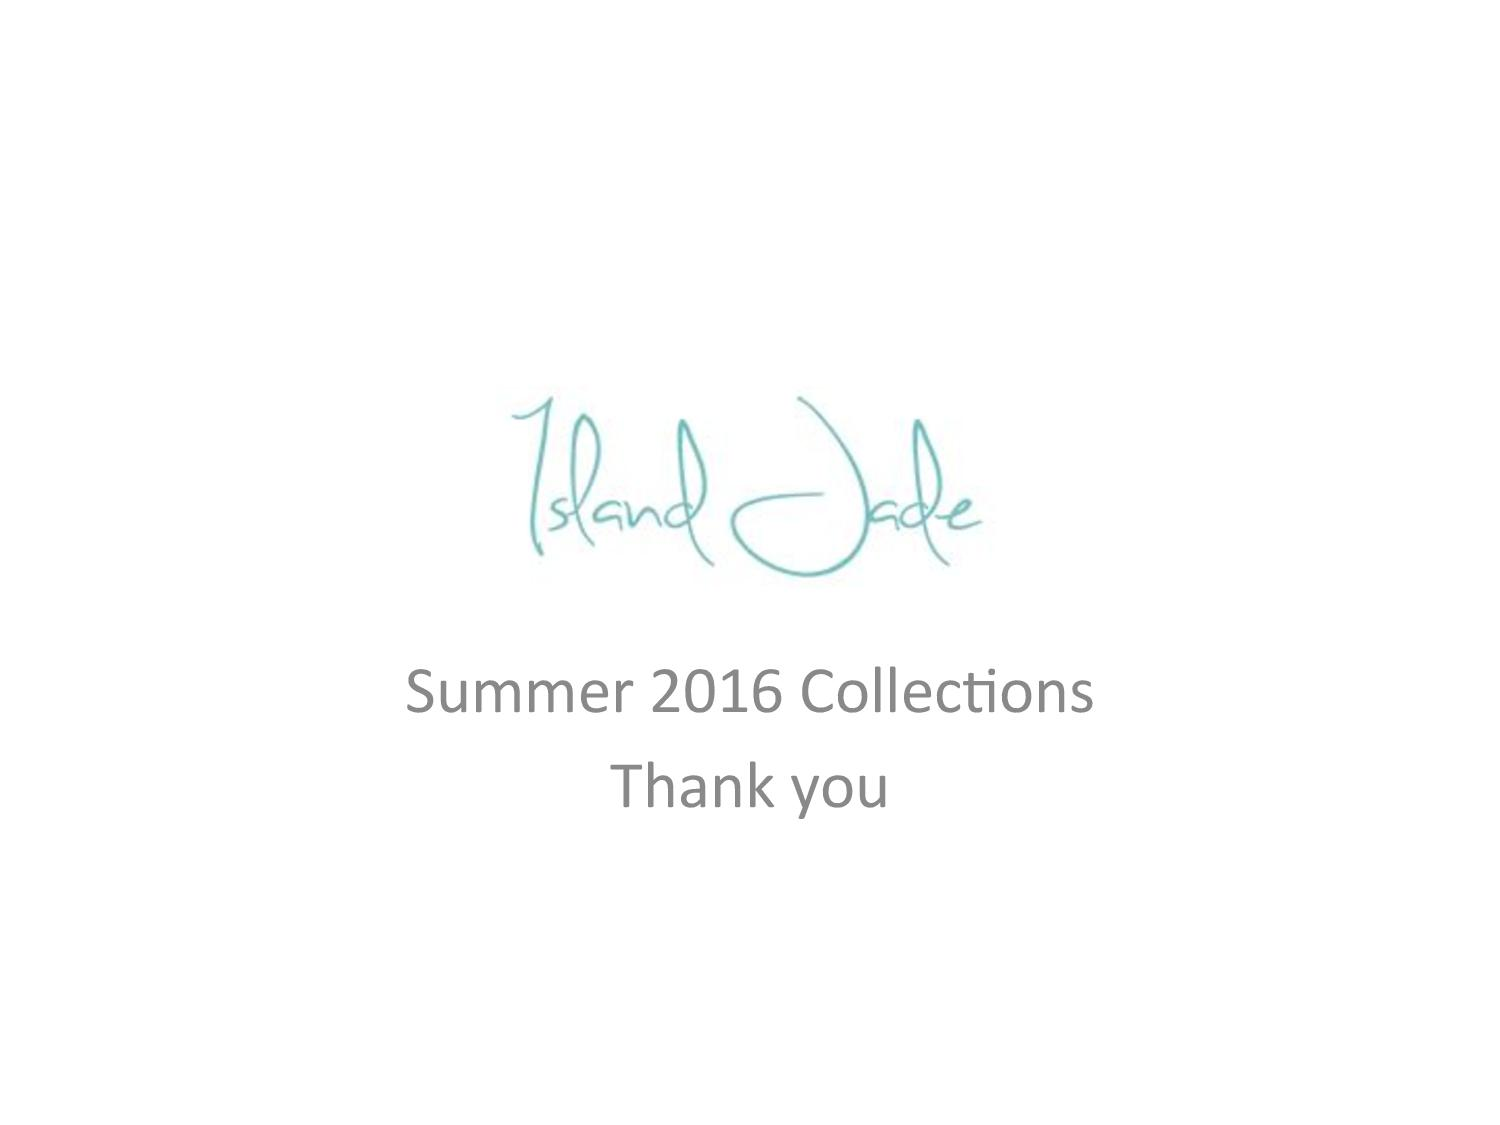 Island Jade Summer 2016 Lookbook-page-064